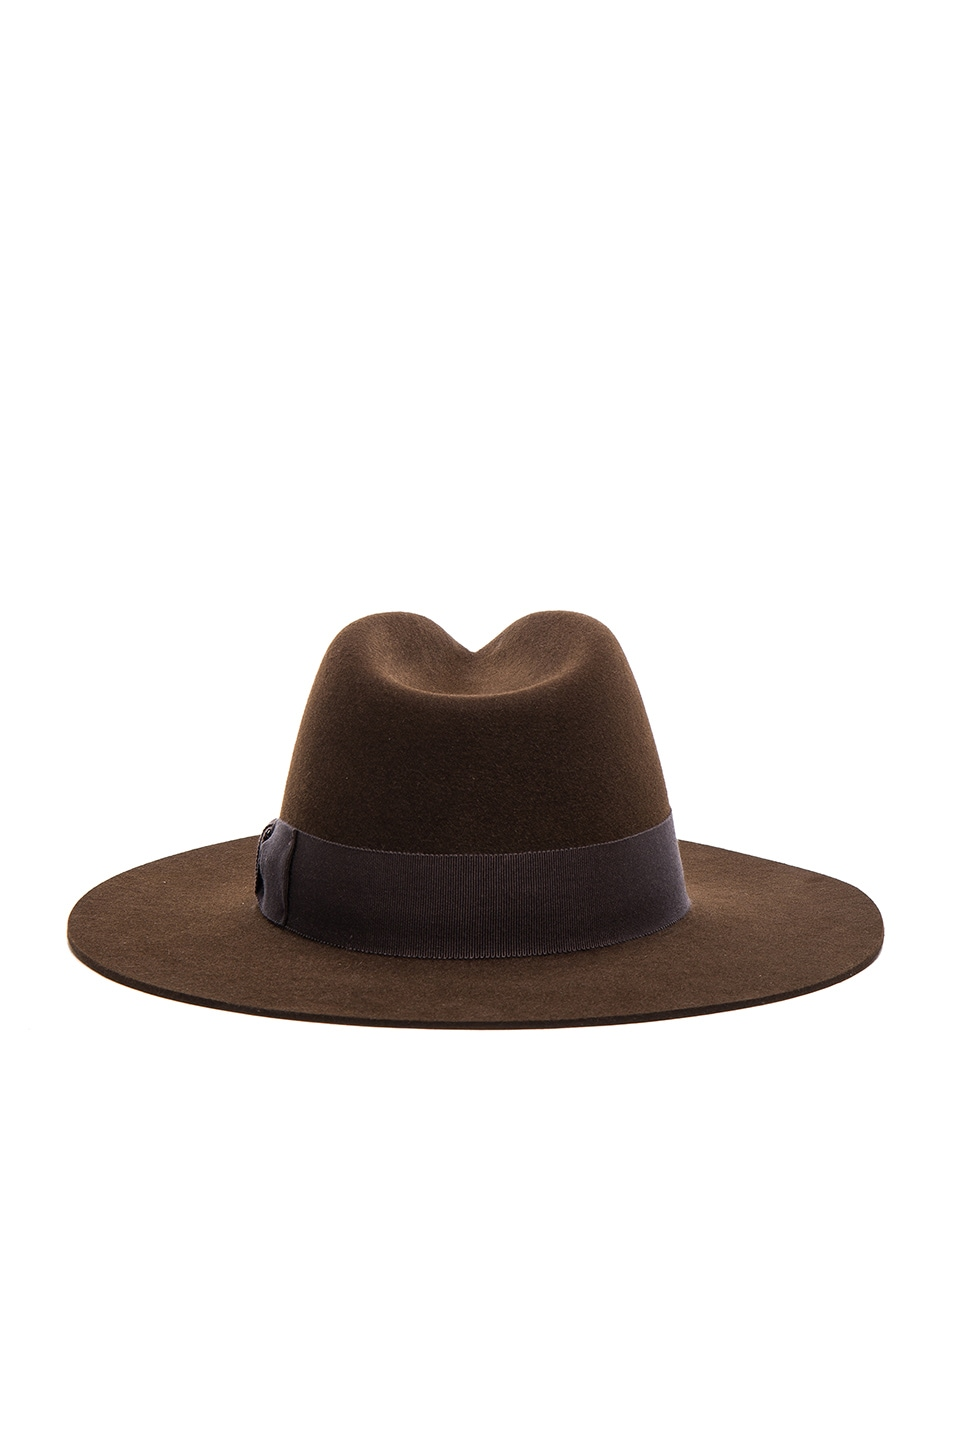 Image 5 of Saint Laurent Hat in Marron